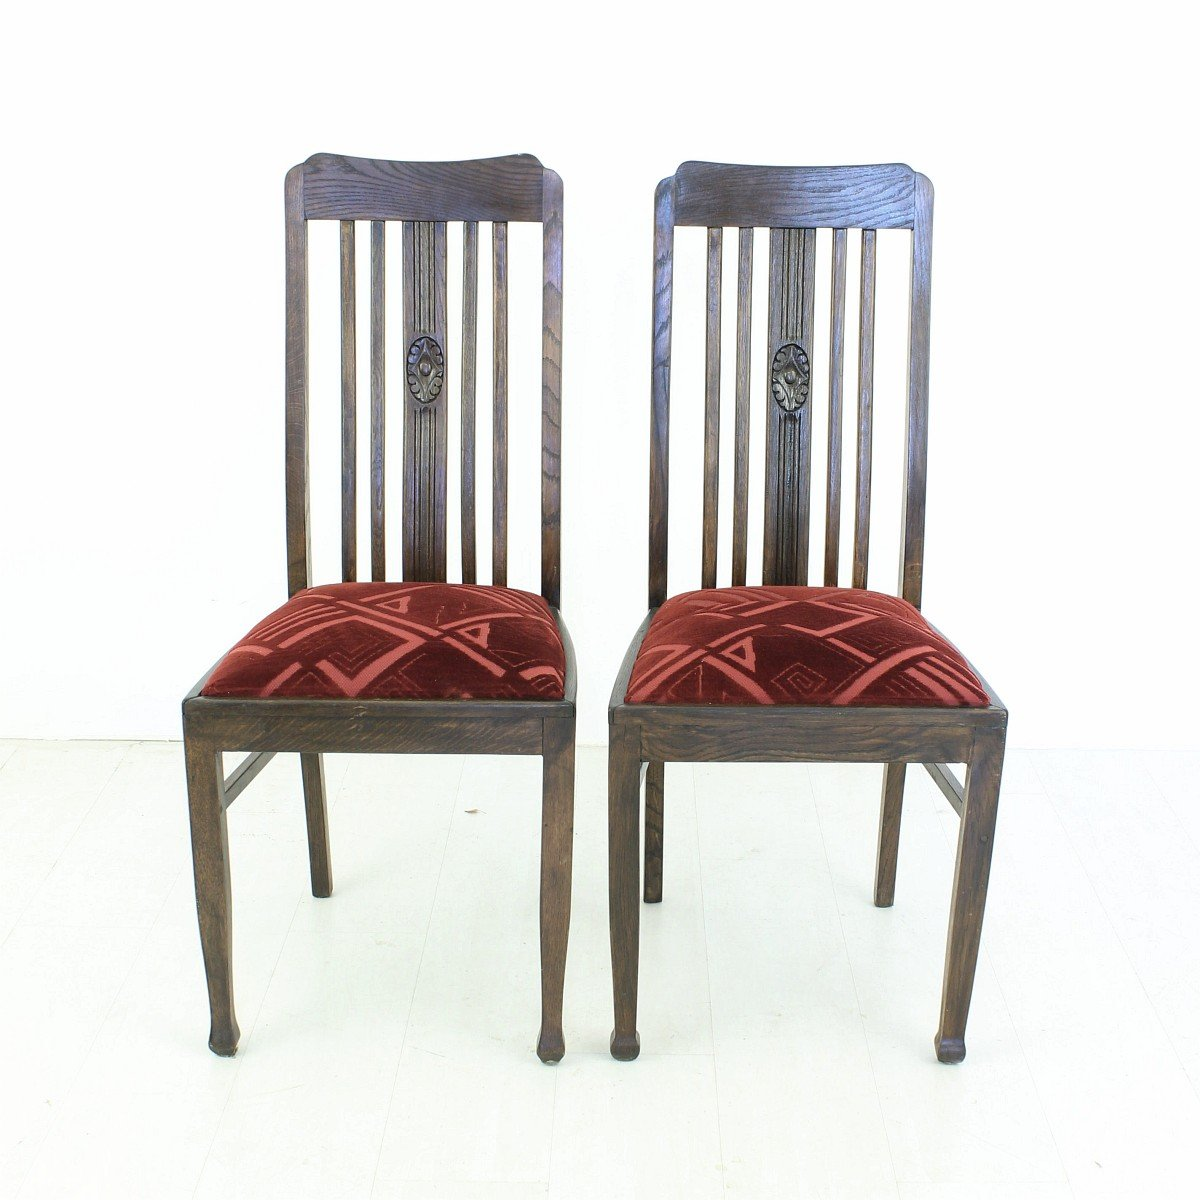 vintage oak dining chairs folding padded seat and back 1920s set of 2 for sale at pamono